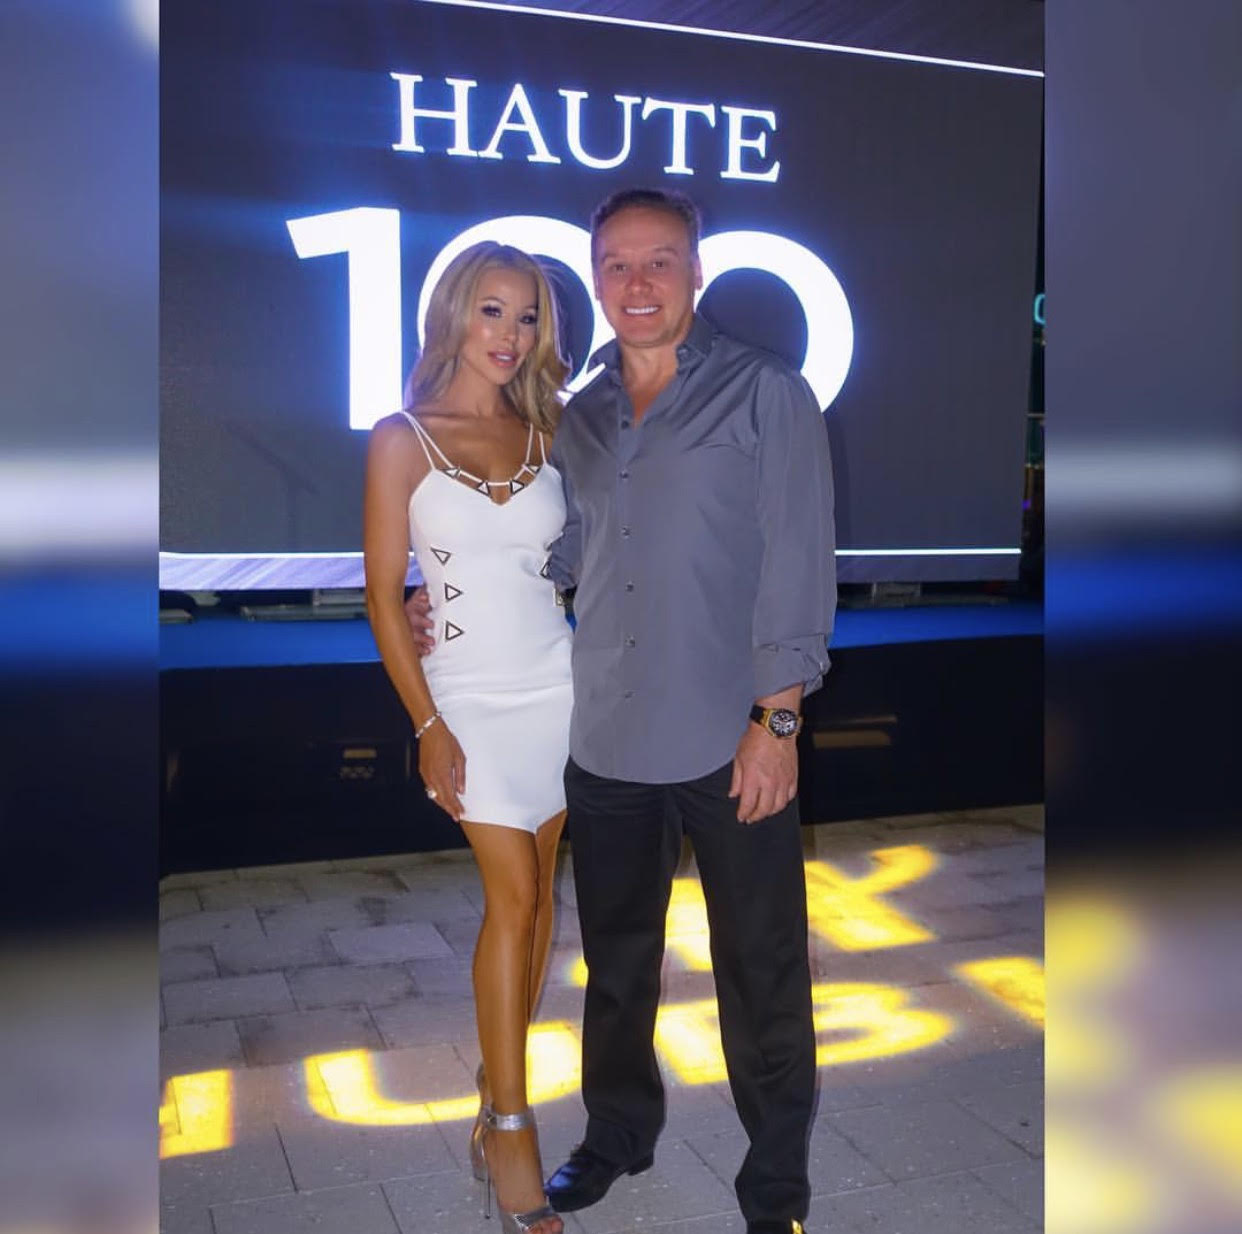 Haute Living Haute 100 List 2017